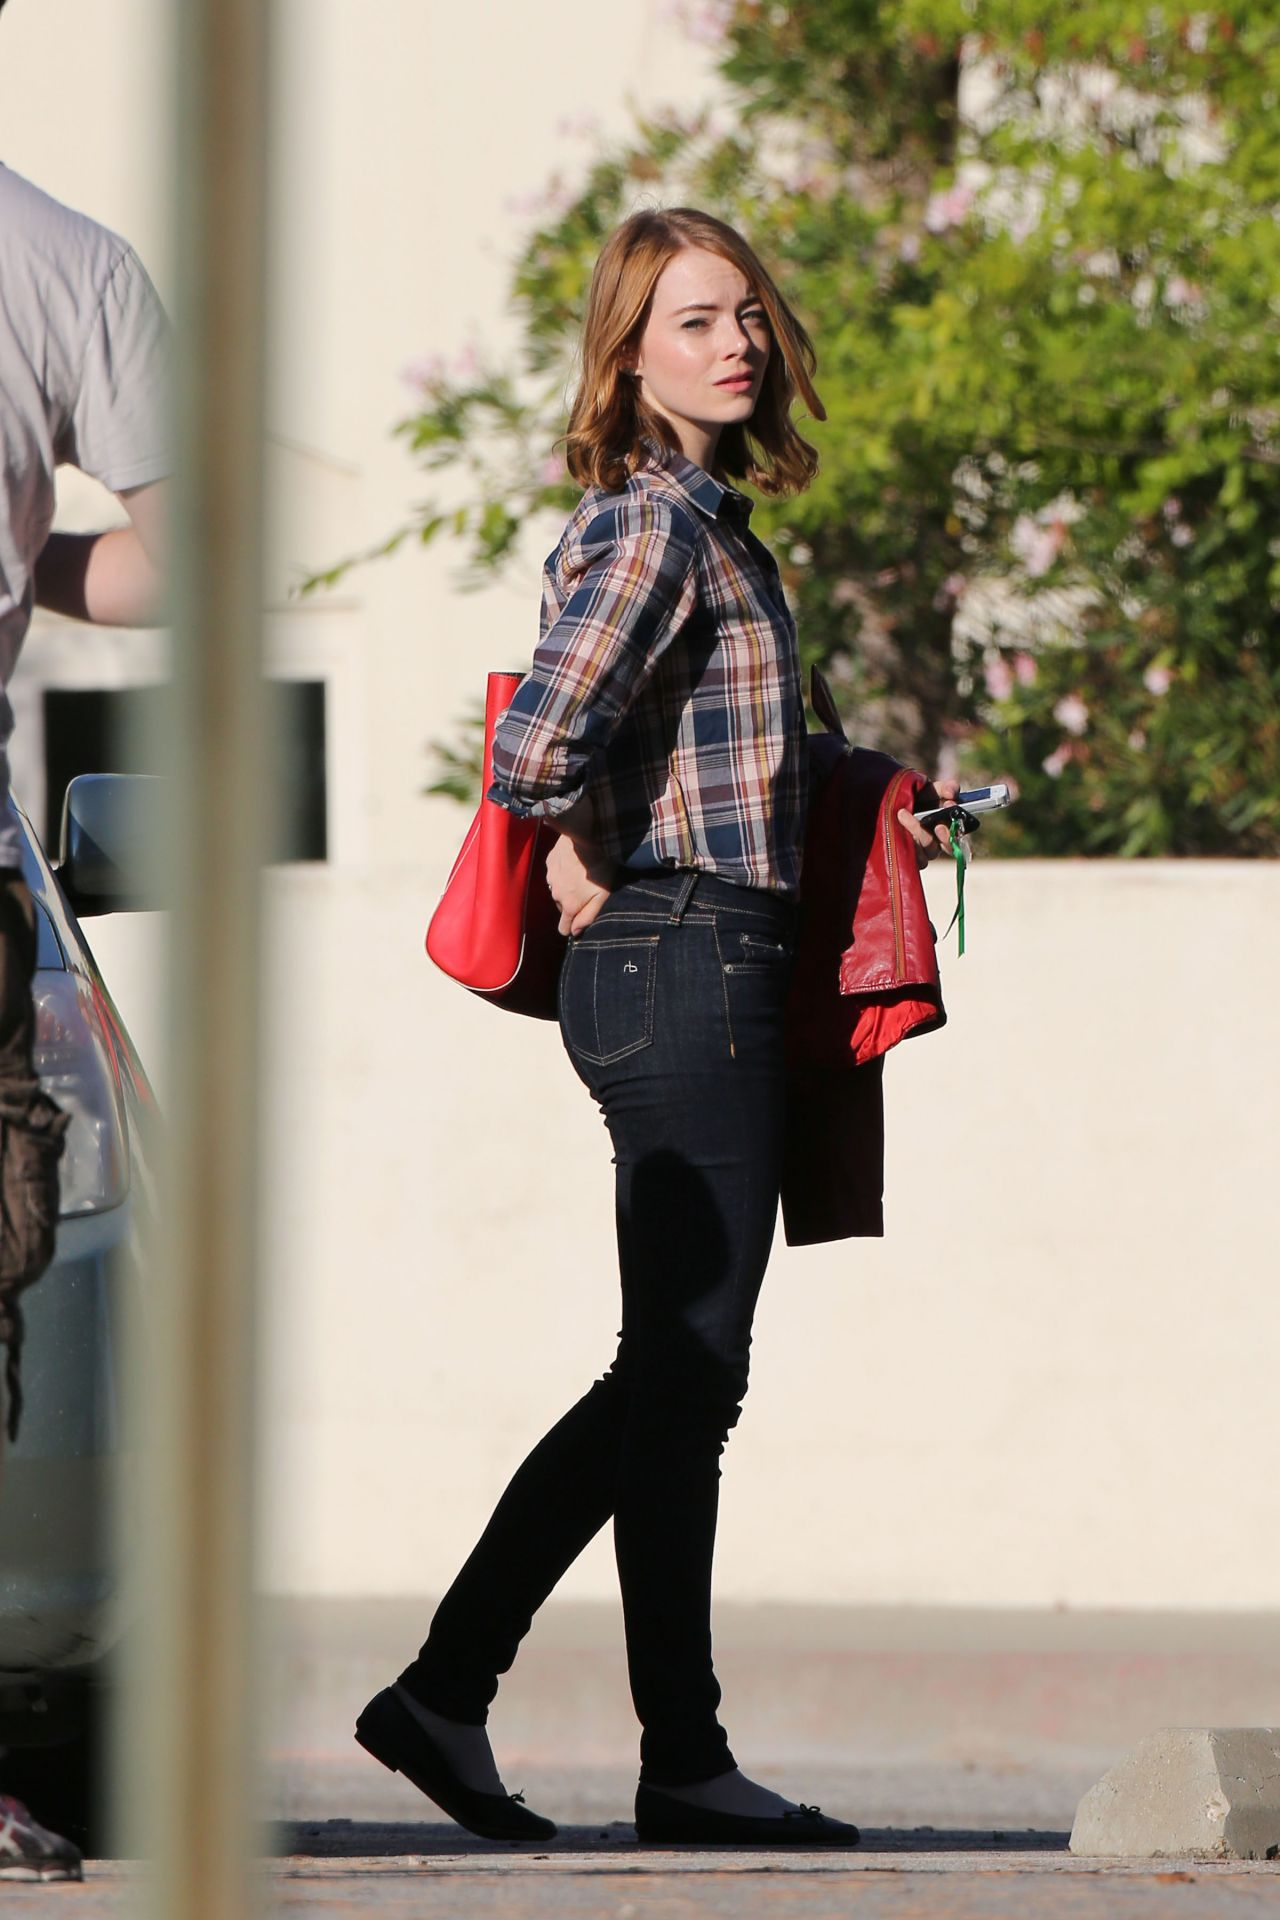 Emma Stone La La Land Set Pics Pasedena September 2015